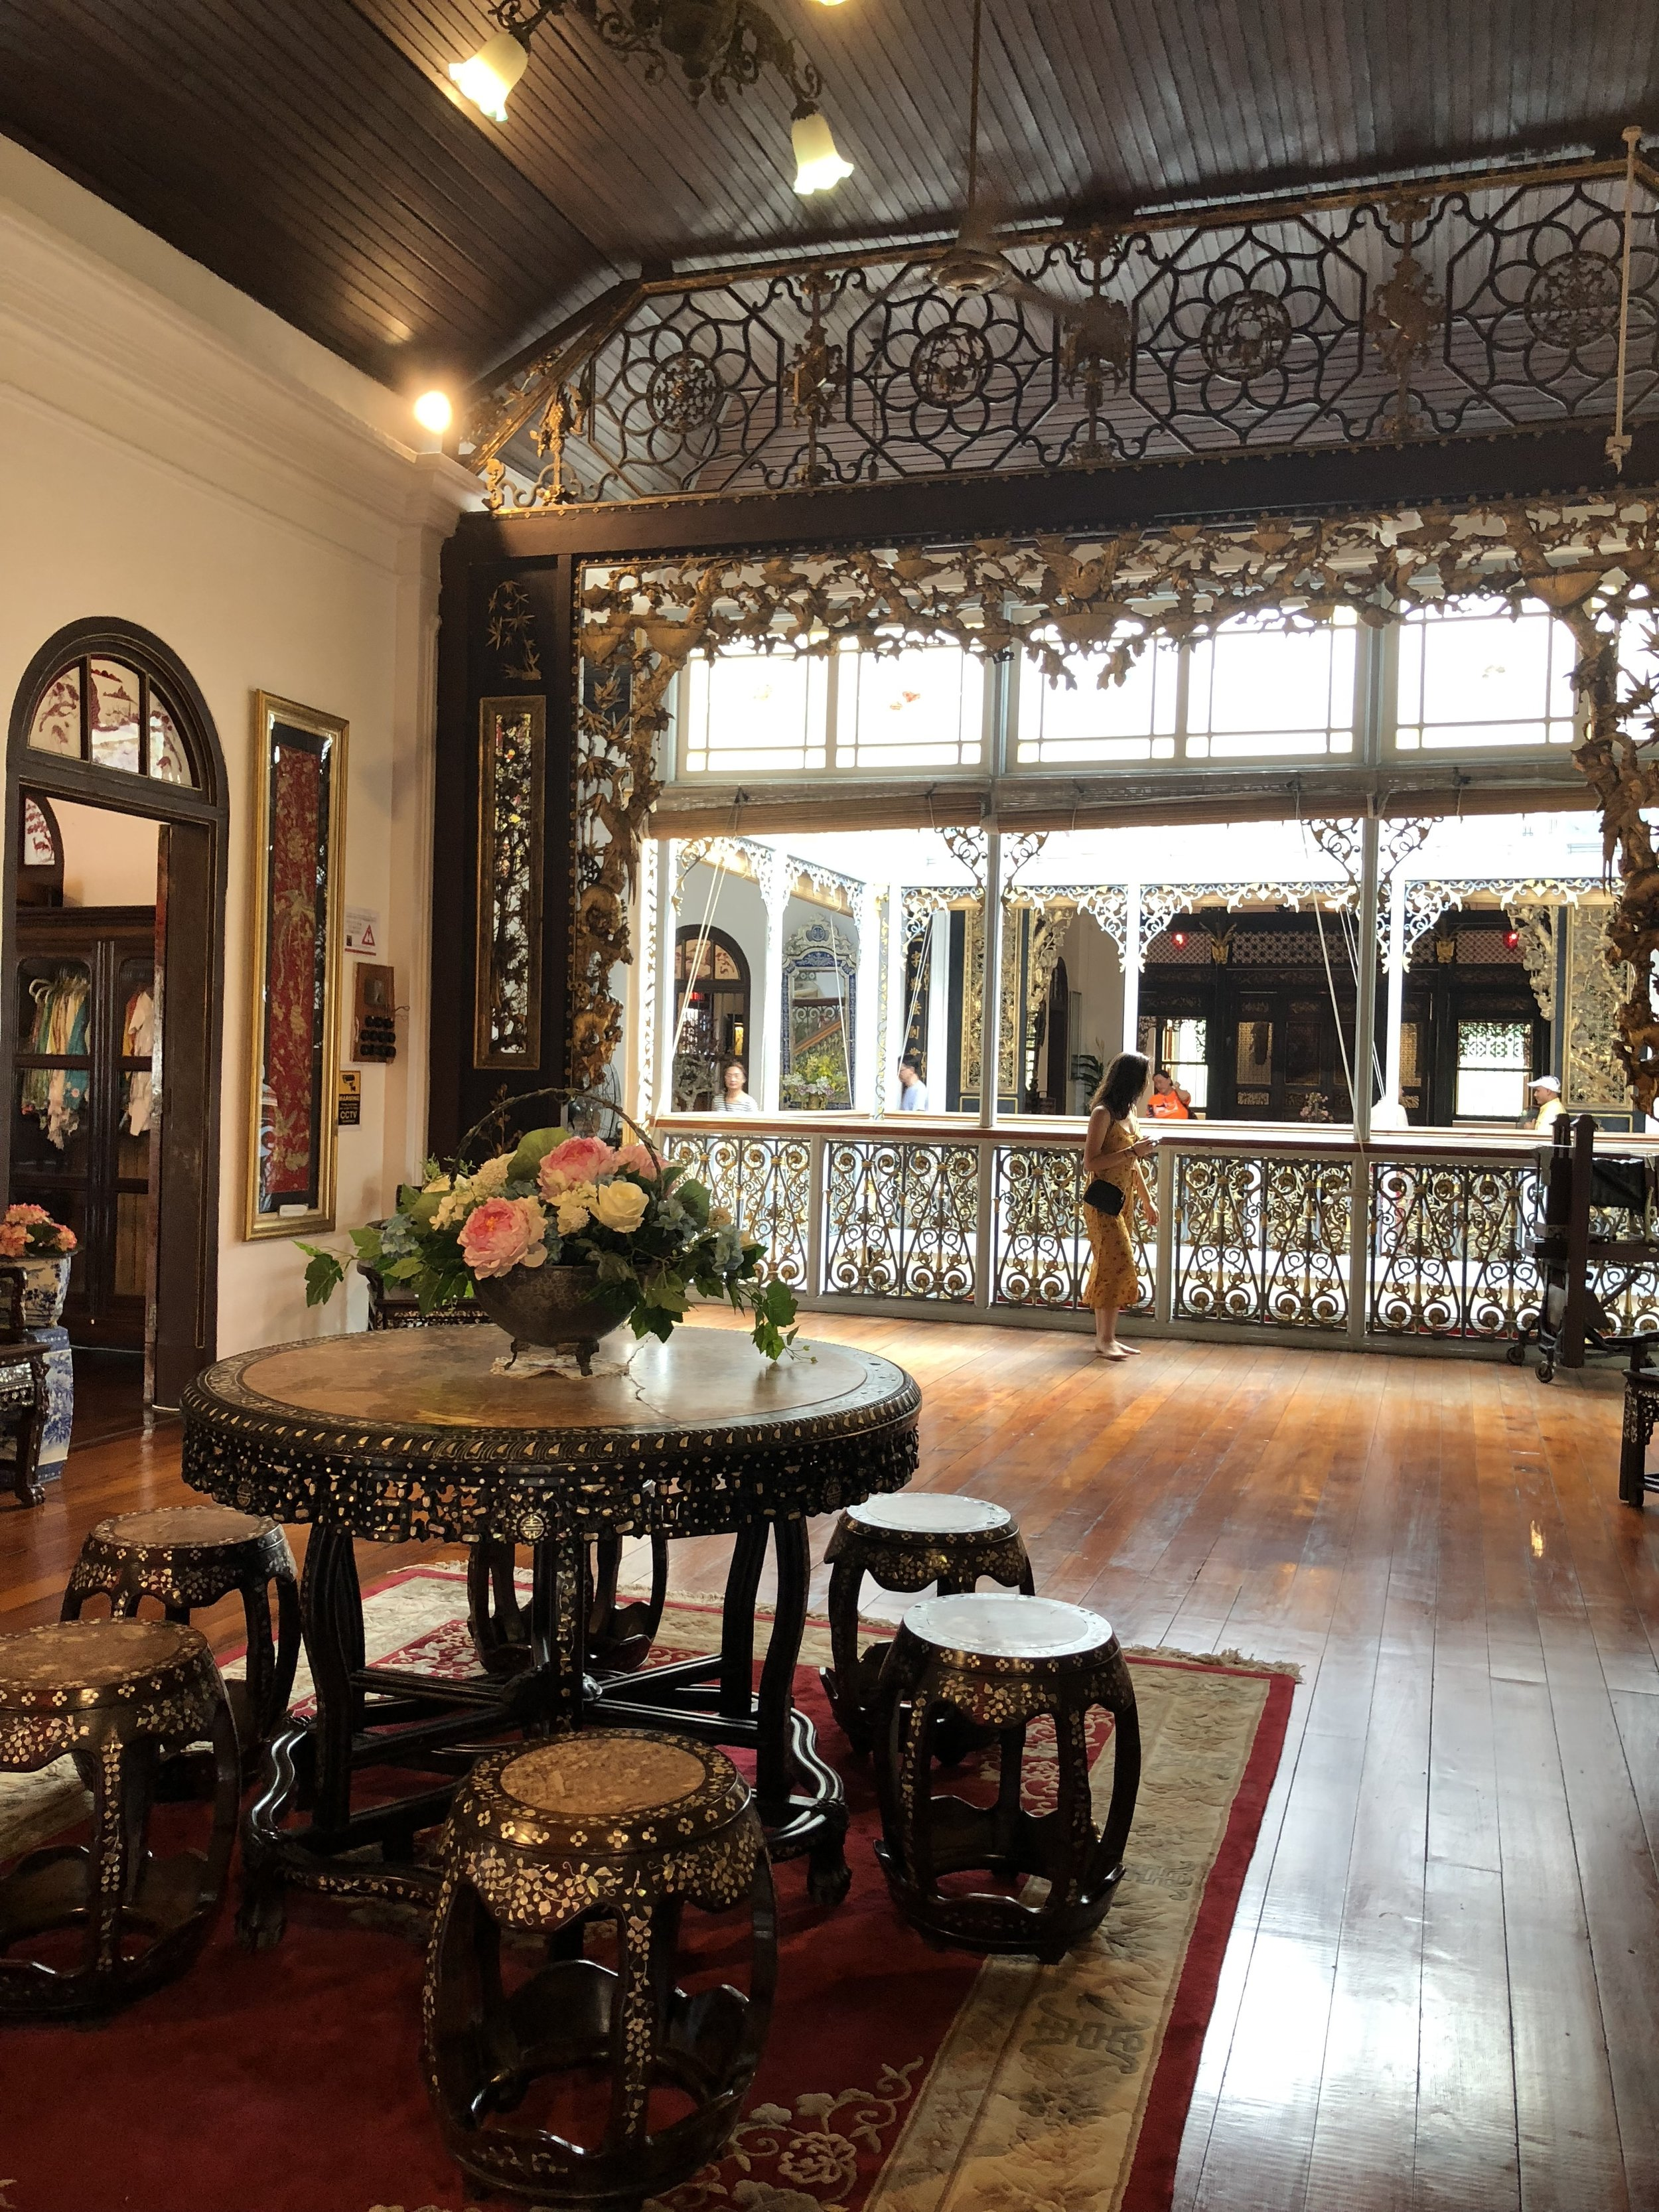 Inside a Peranakan home!